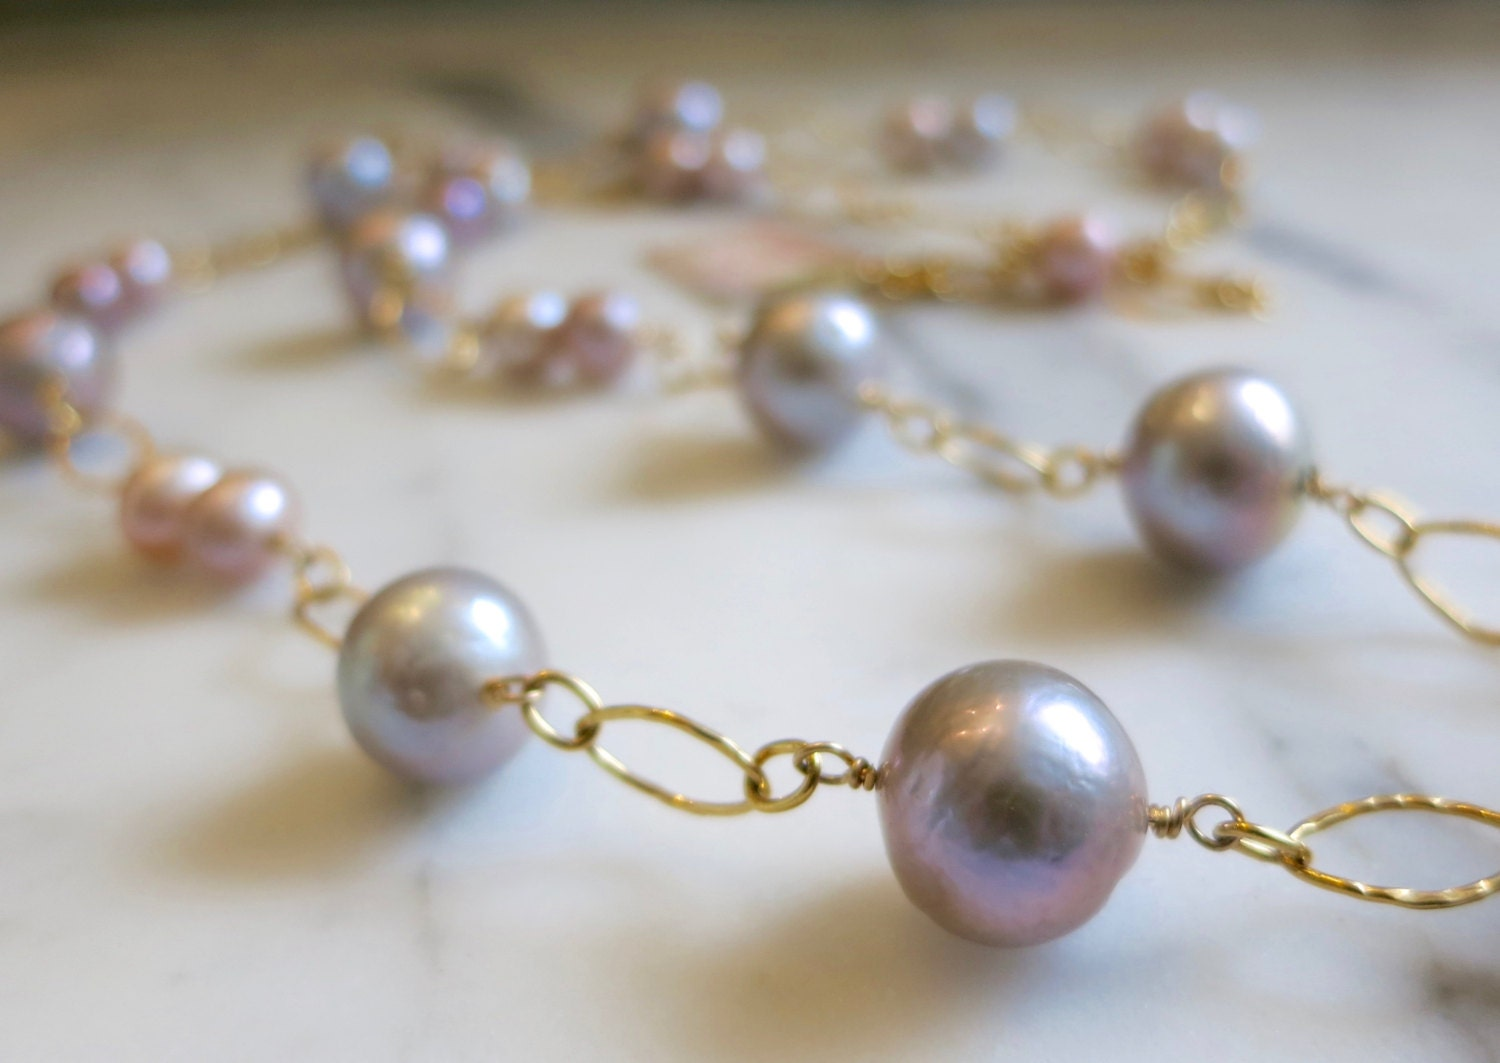 Pink Pearl Necklace, Authentic Pearl Necklace, Wedding Necklace, Gold  Necklace, Beach Jewelry, Large Pearl Necklace, Long Necklace